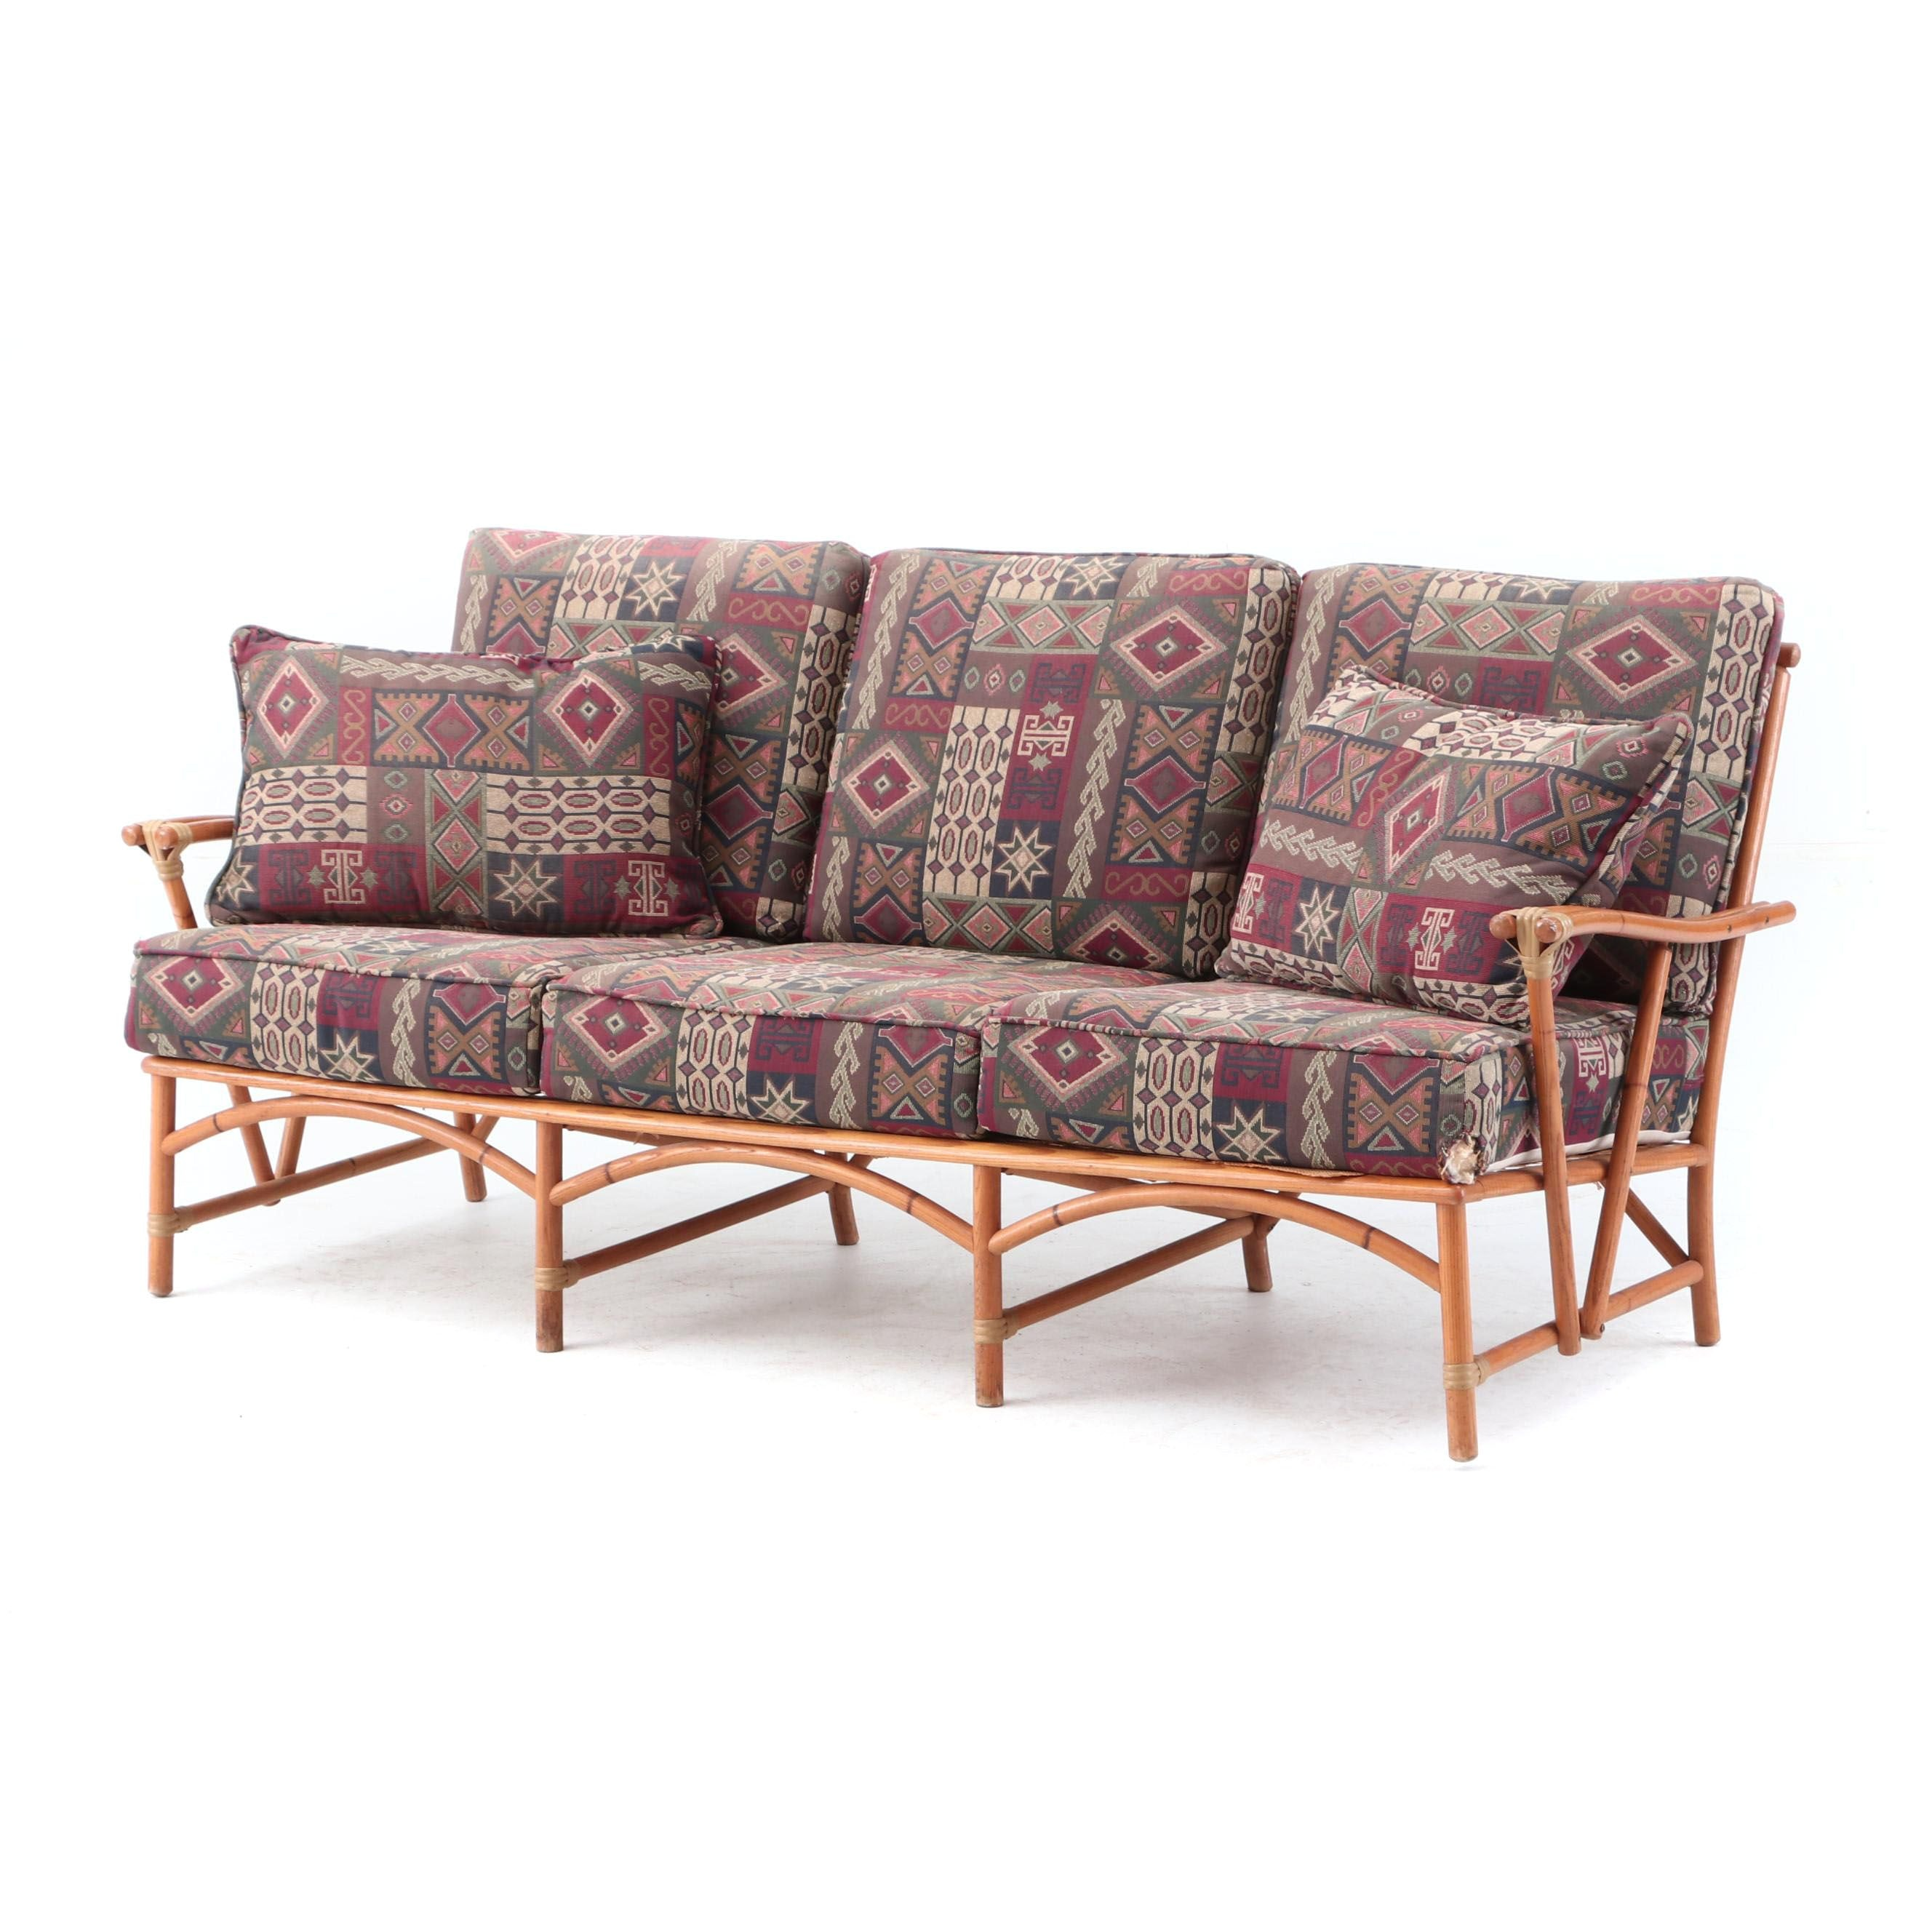 Heywood Wakefield Sofa With Upholstered Cushions Ebth